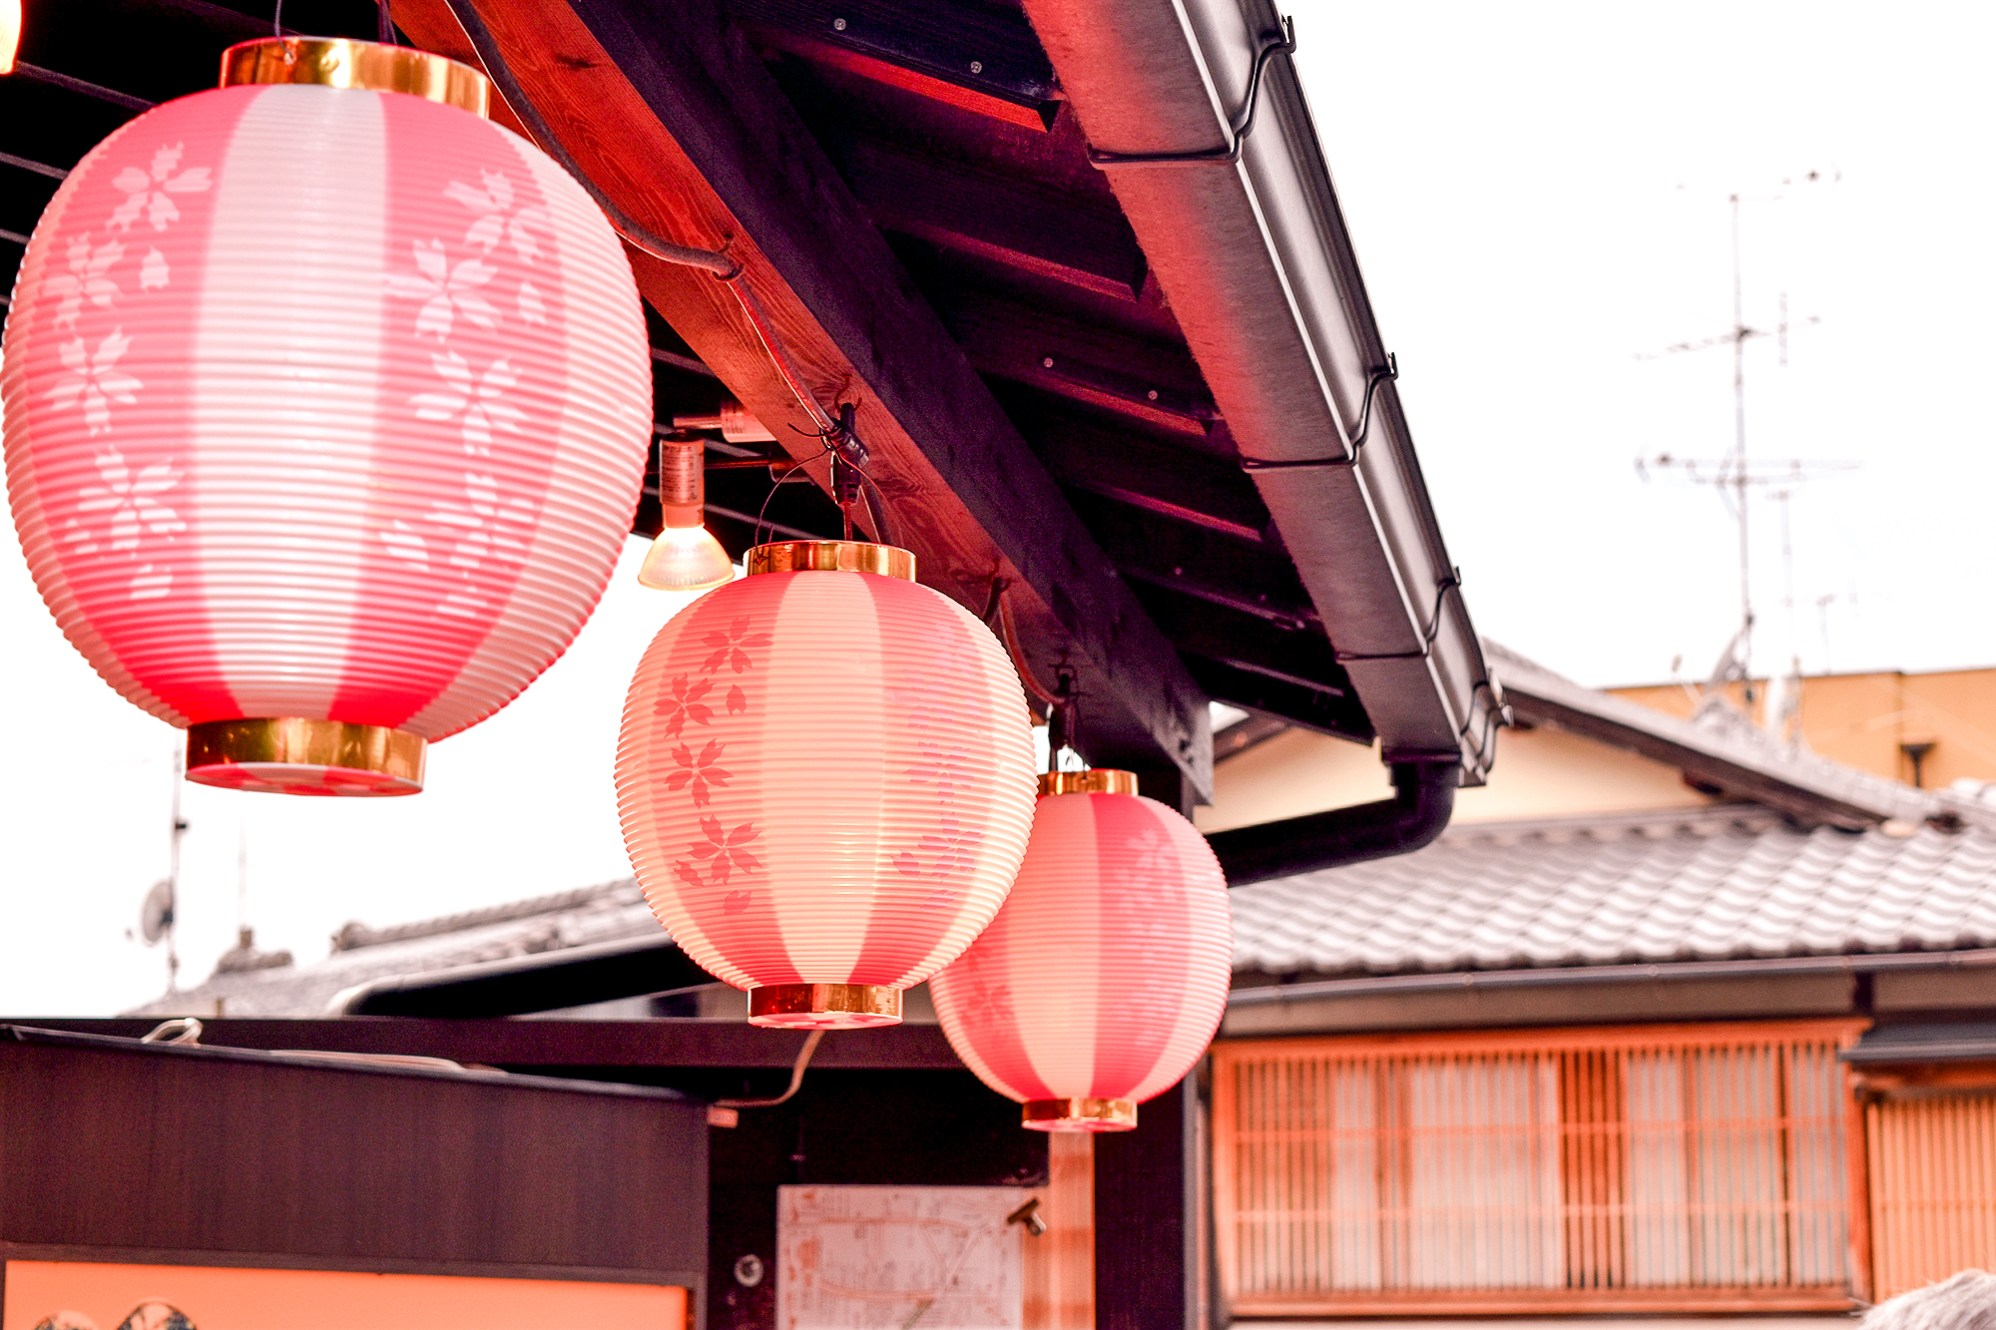 Lanterns adorned with sakura